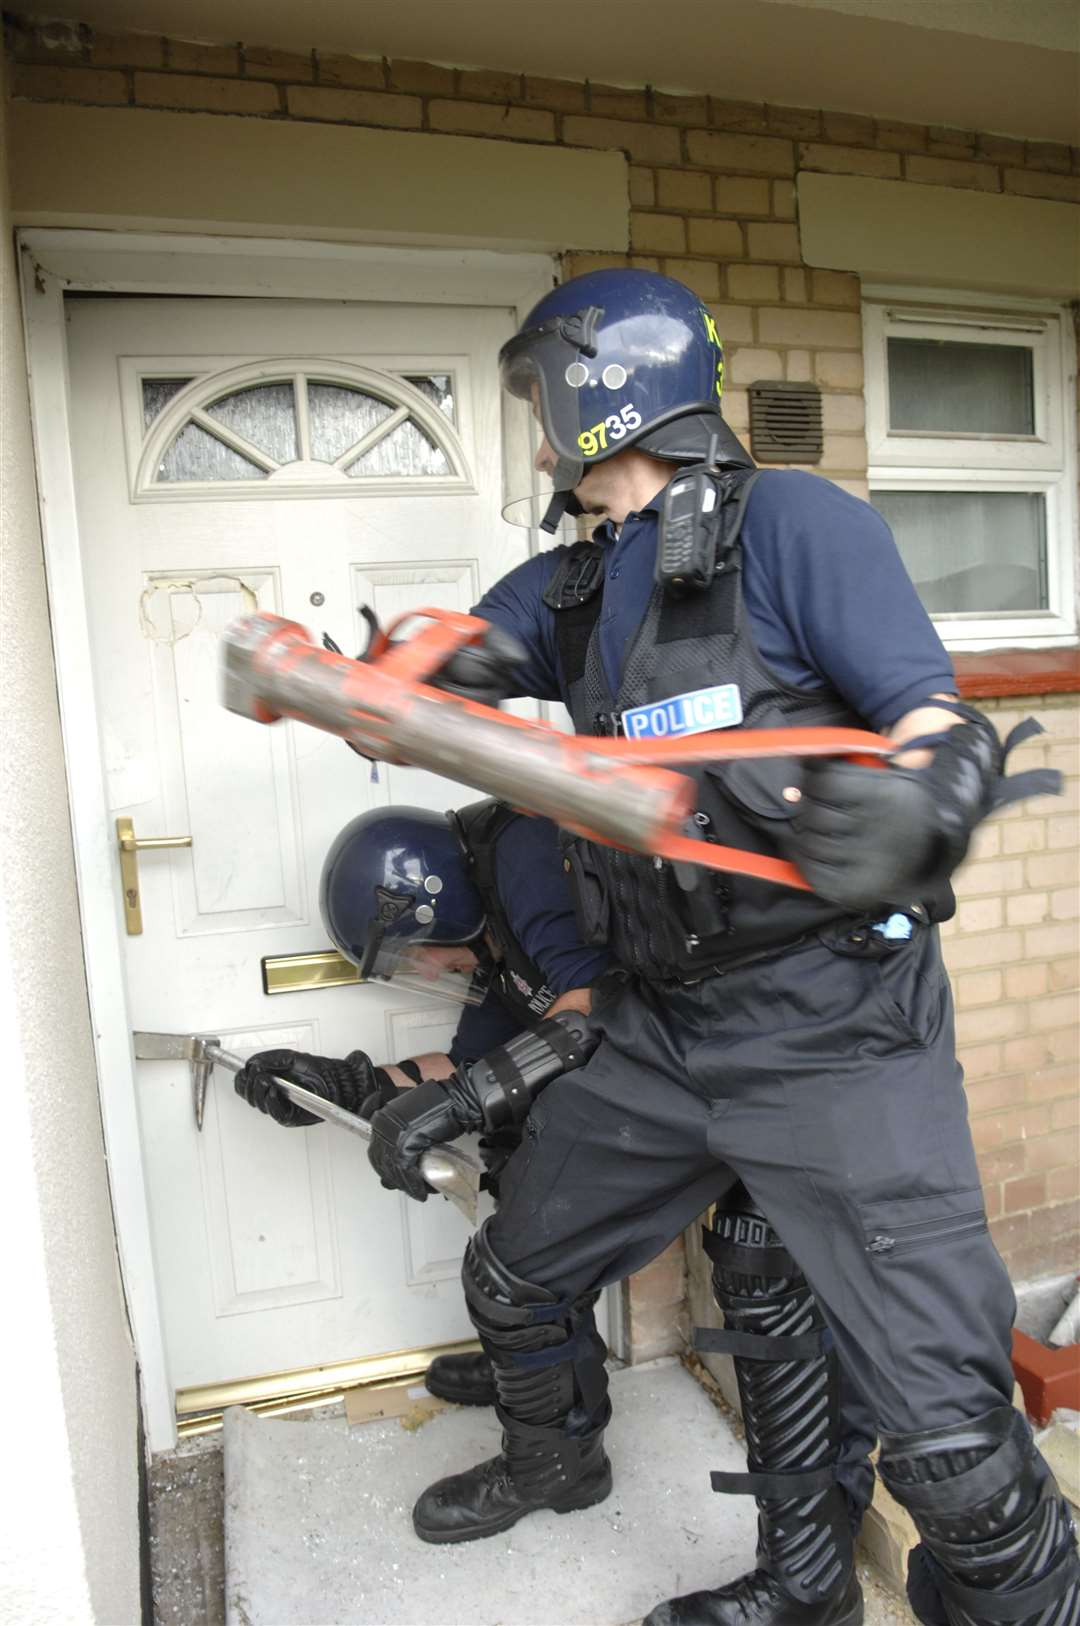 Police conduct a drugs raid at a property. This photo is for illustrative purposes only.